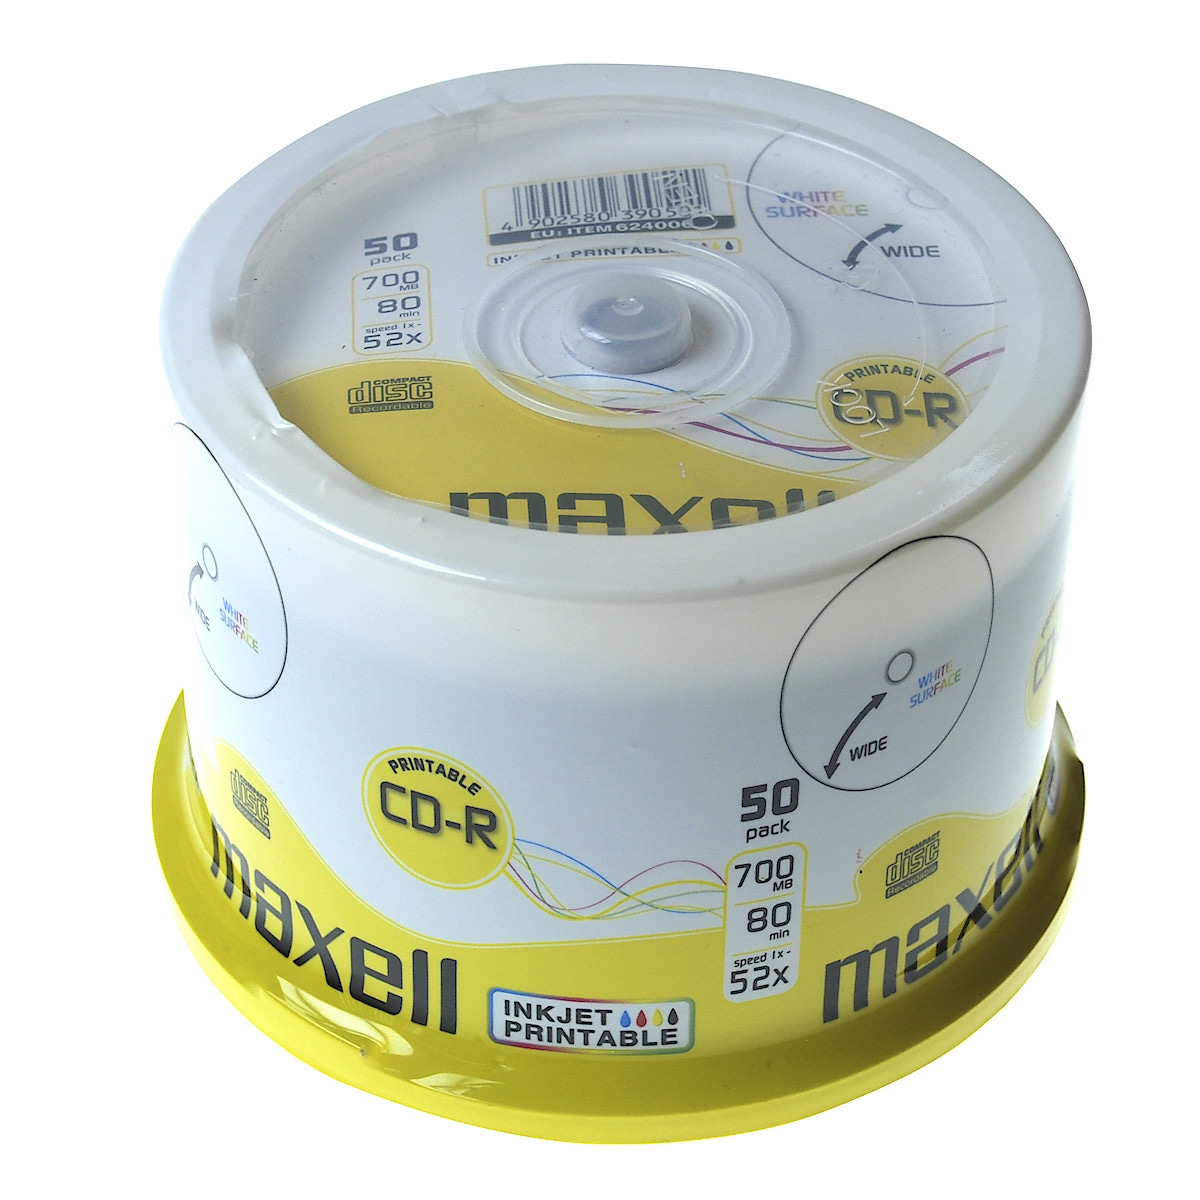 Maxell CD-R 700 MB Cake Box